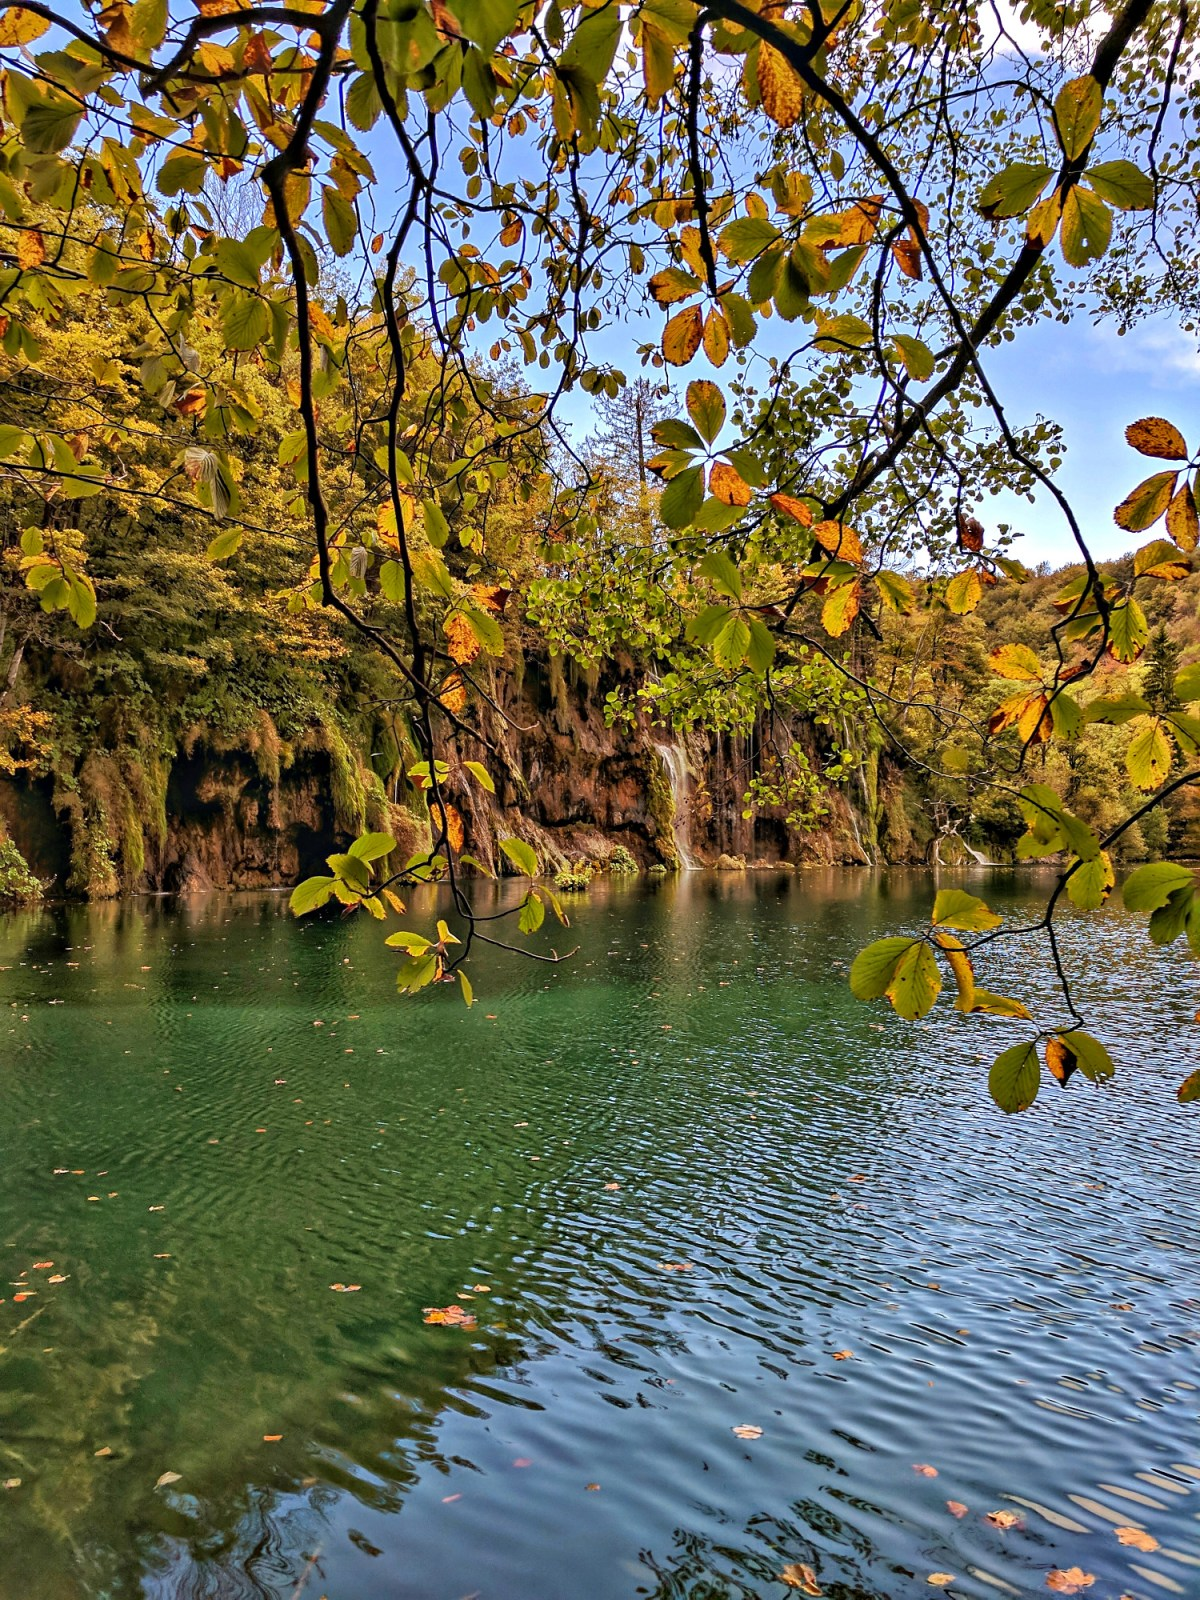 Europe's top natural attraction. View of of the lake through leaves.